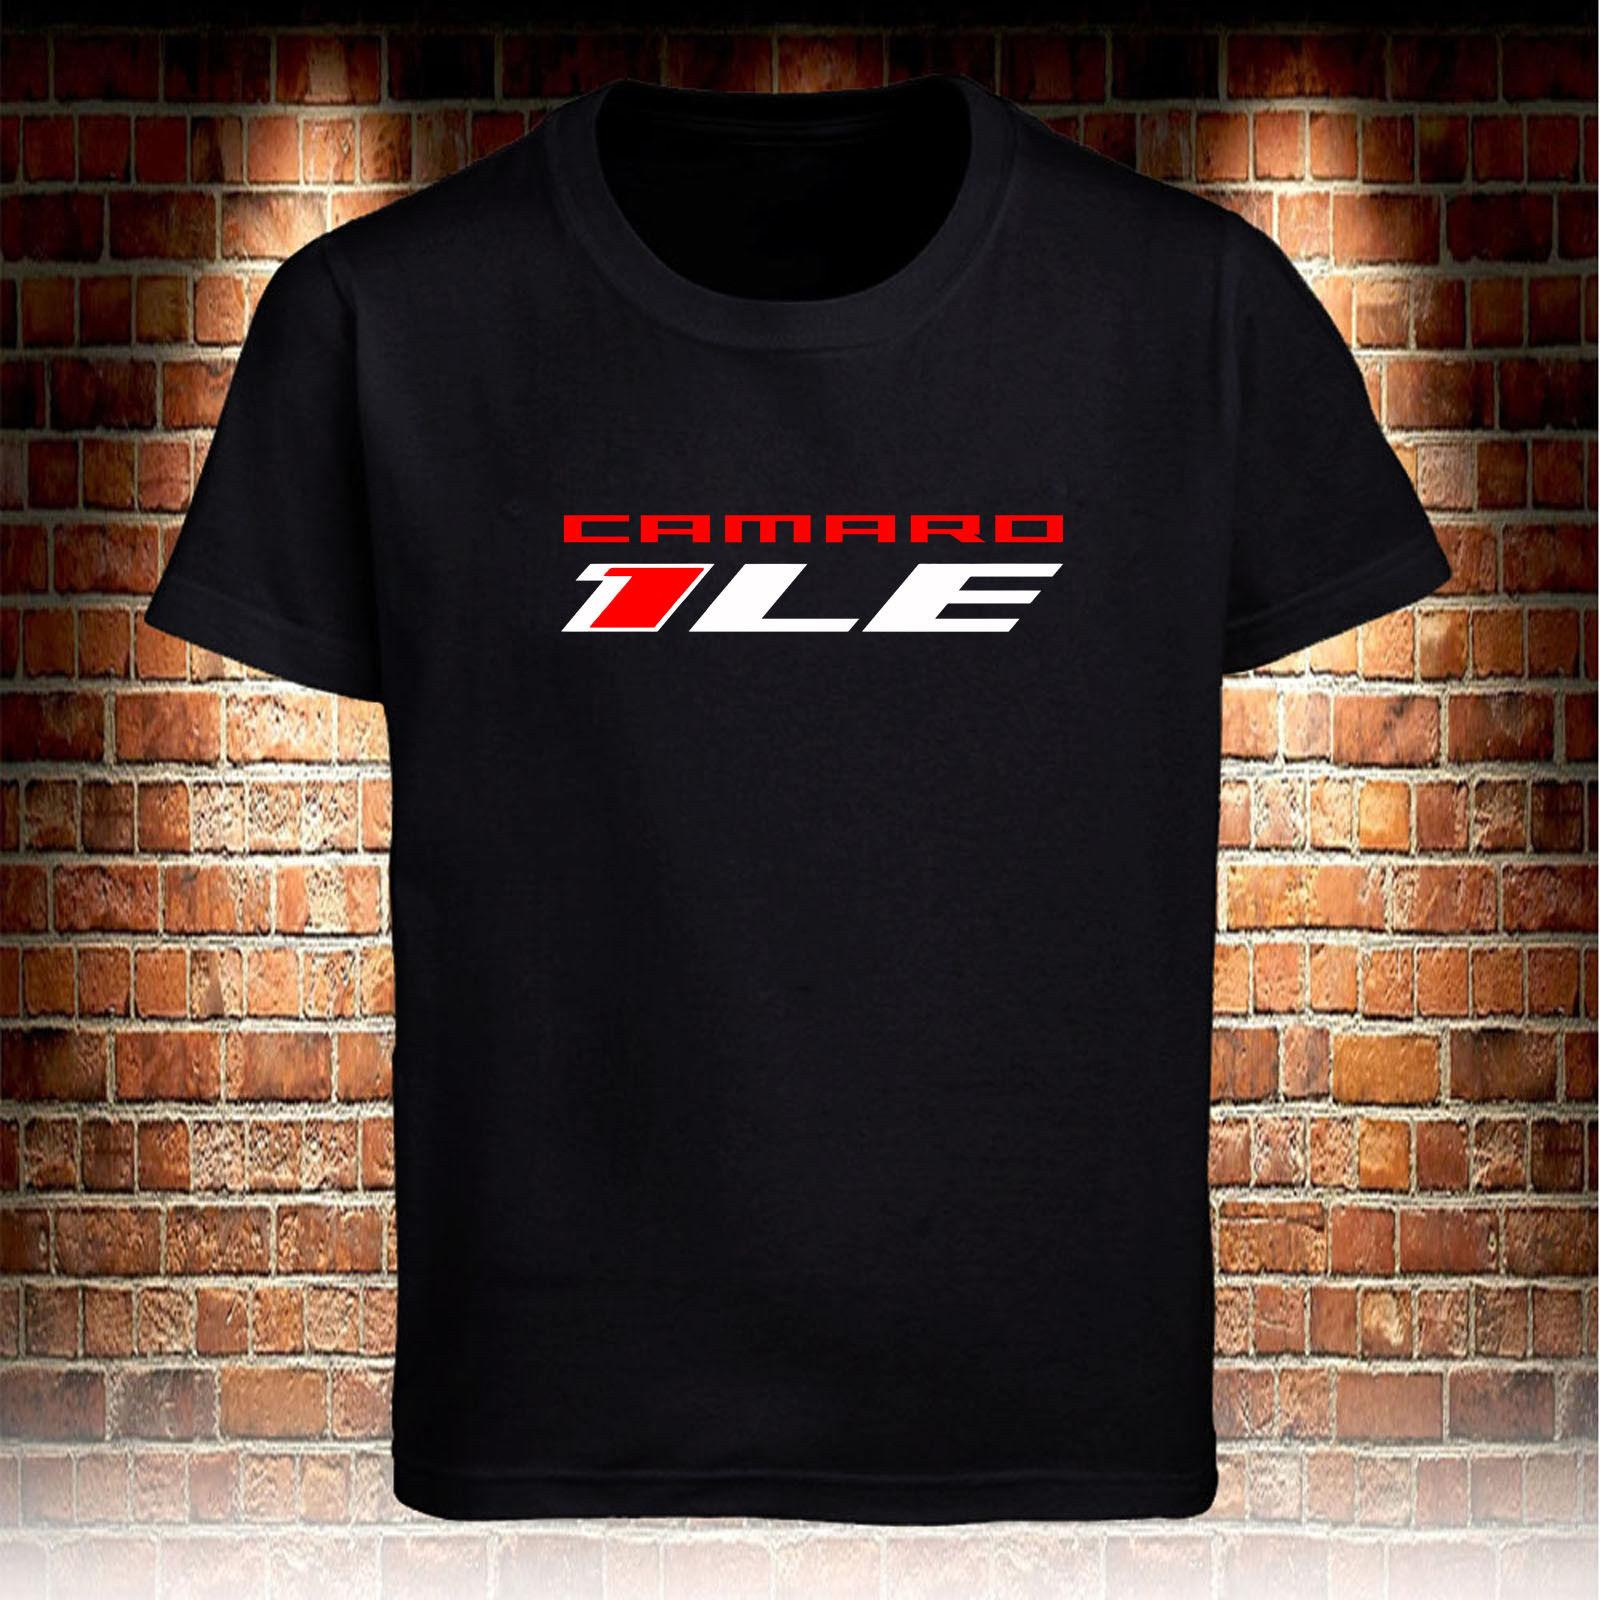 58c6ee08 Black T-shirts Chevrolet Chevy Camaro 1LE 1 LE Men's Size S to 3XL Funny  free shipping Unisex Casual